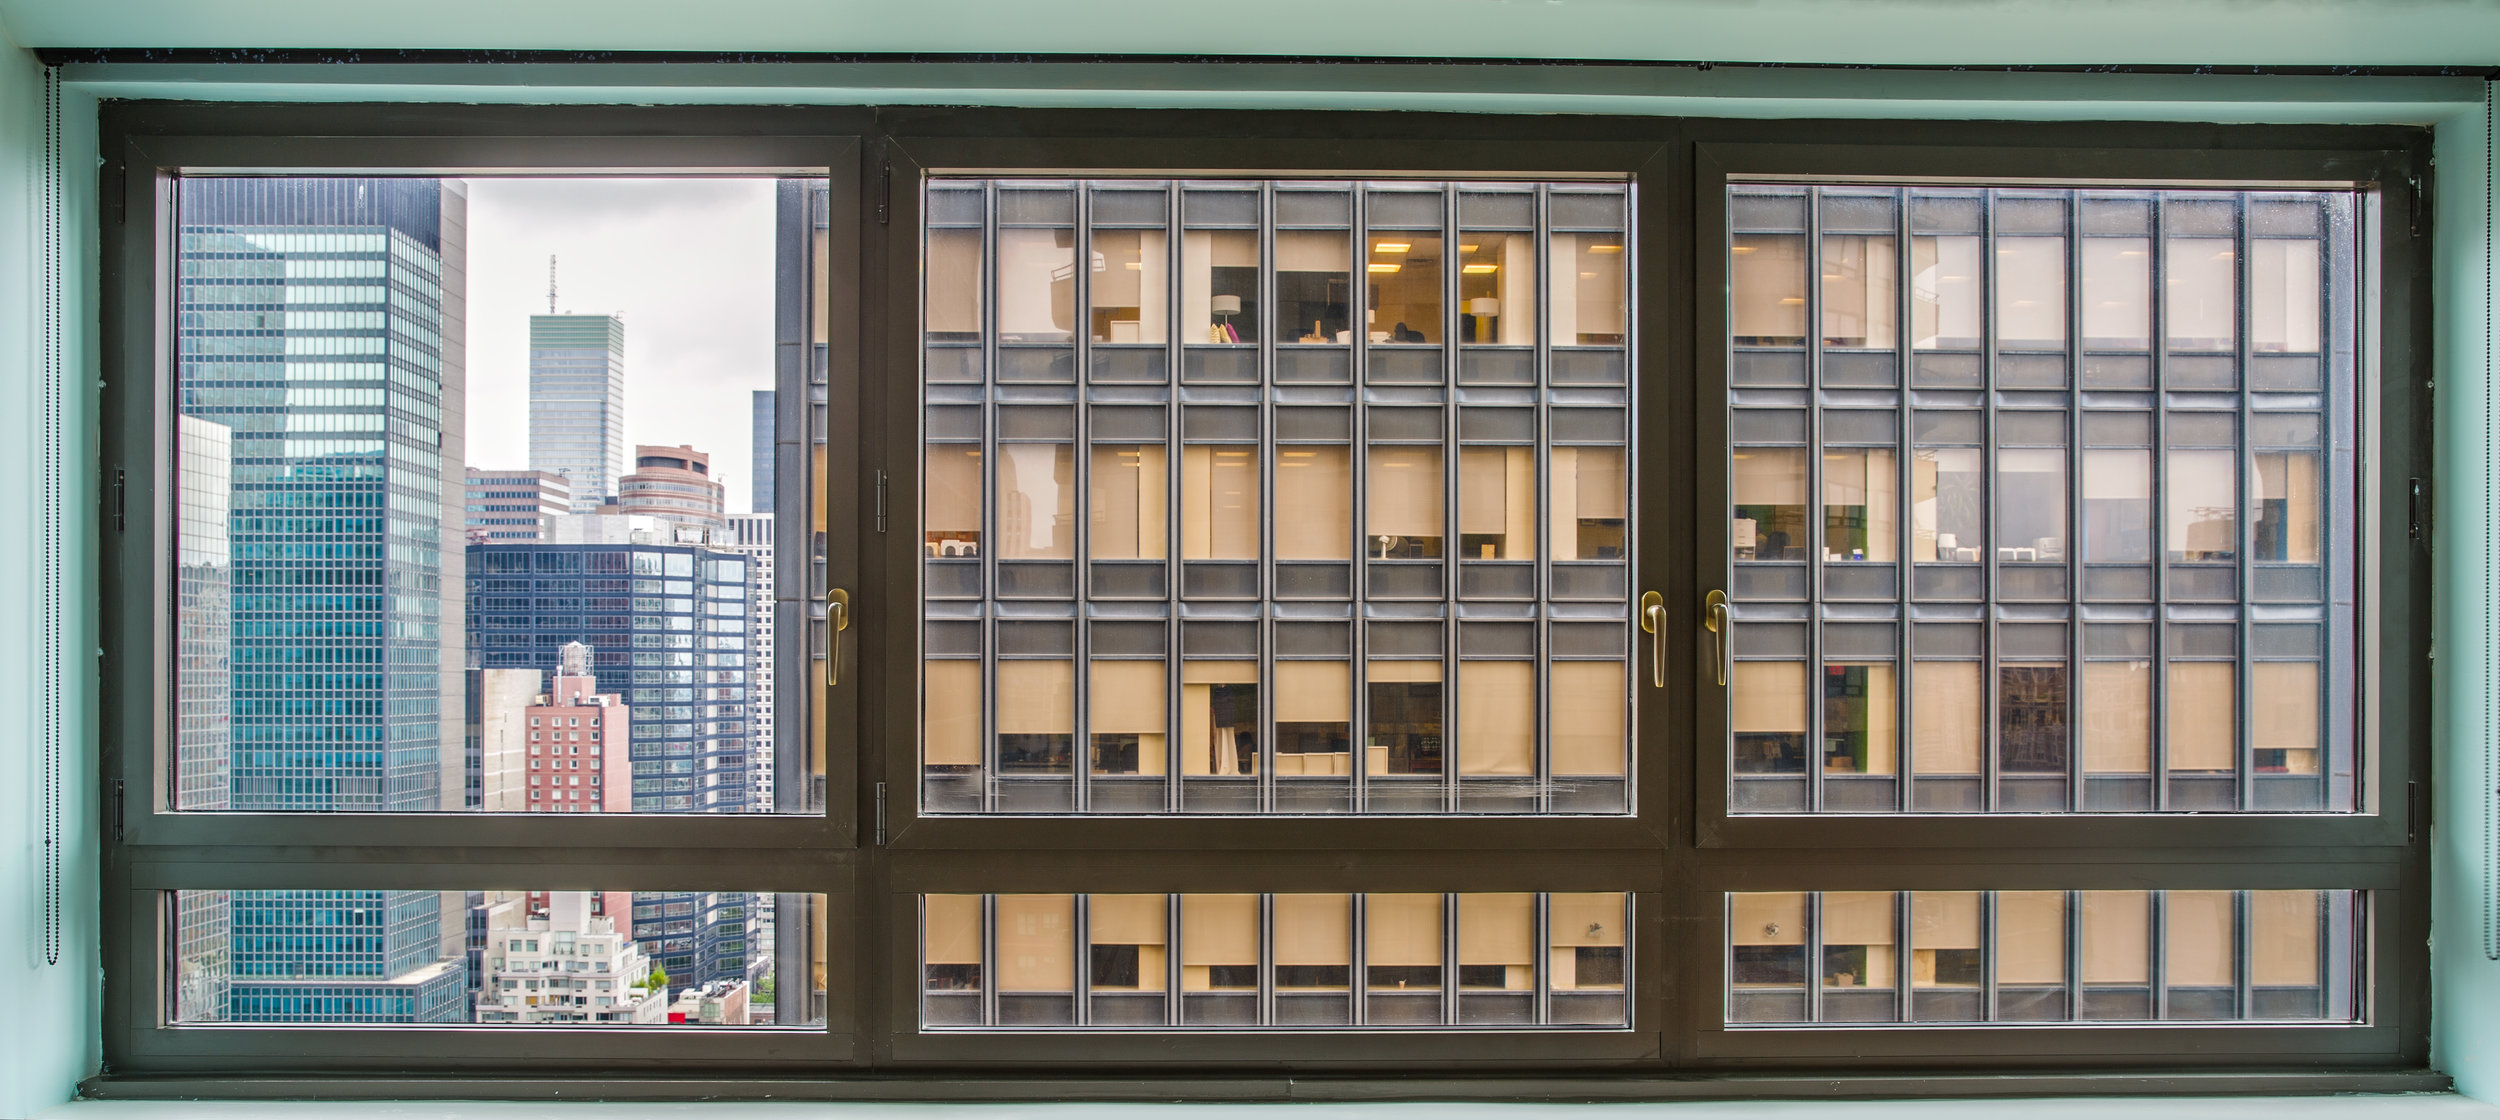 Skyline_Windows_01.jpg